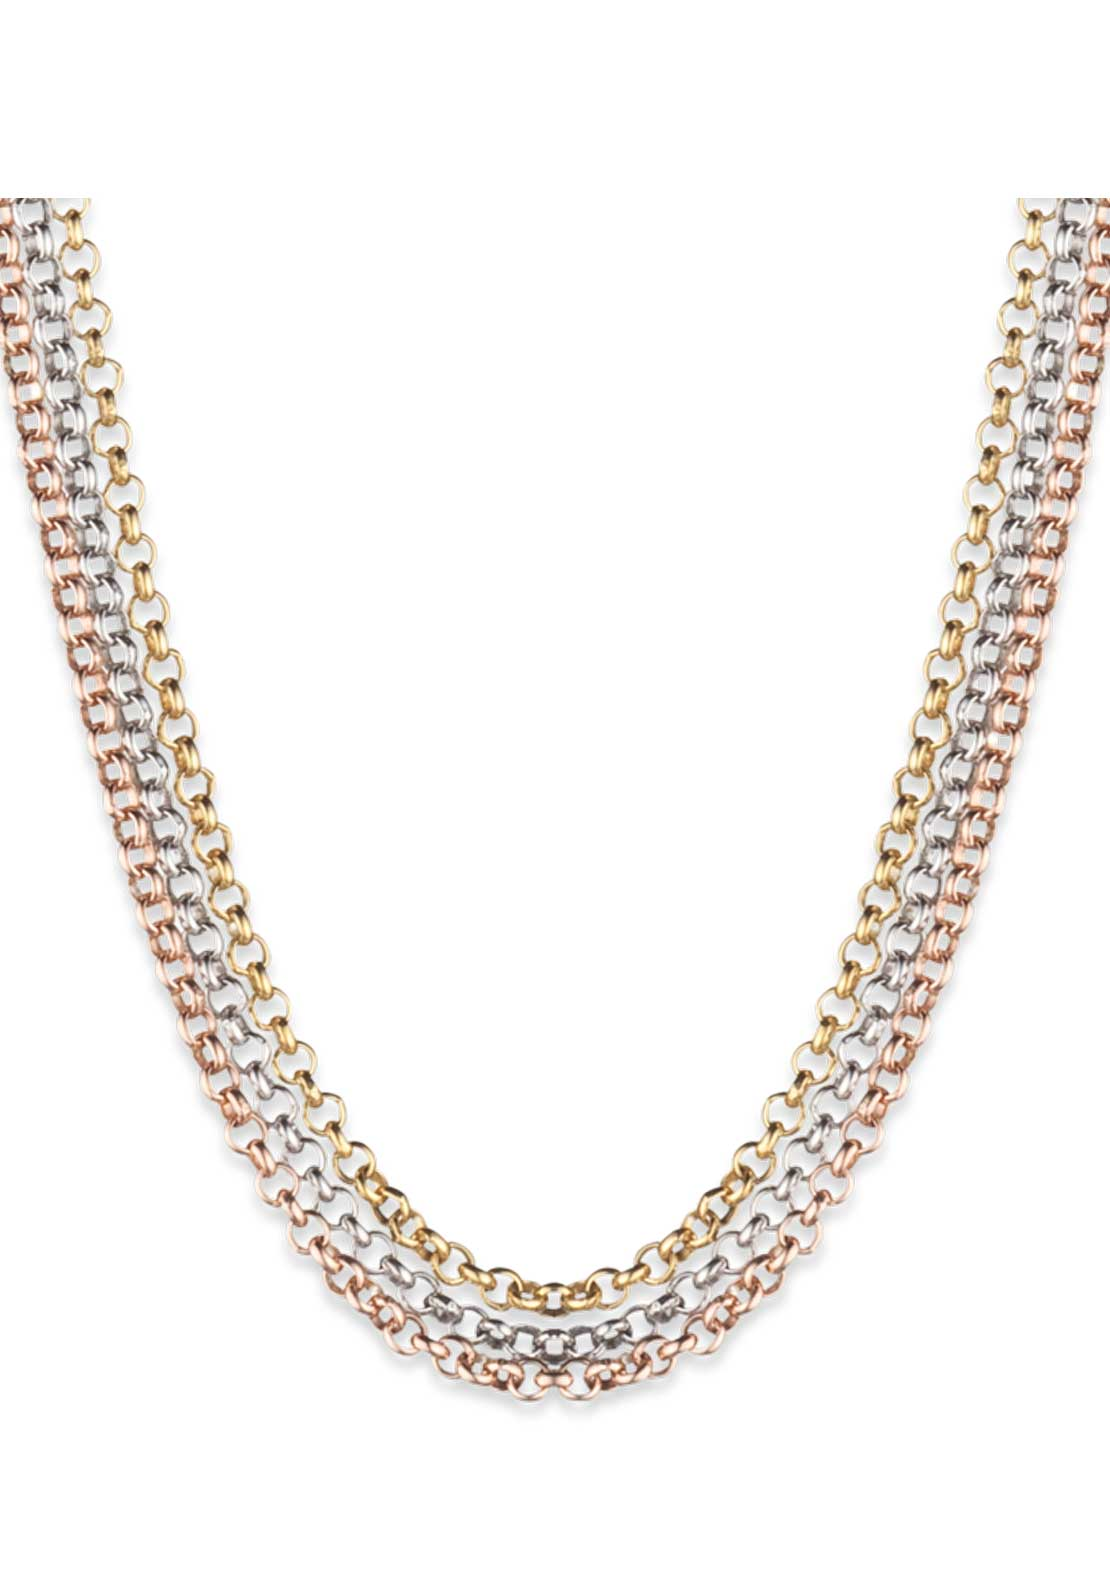 Engelsrufer 80cm Tricolour Chain, Gold, Rose gold, Silver